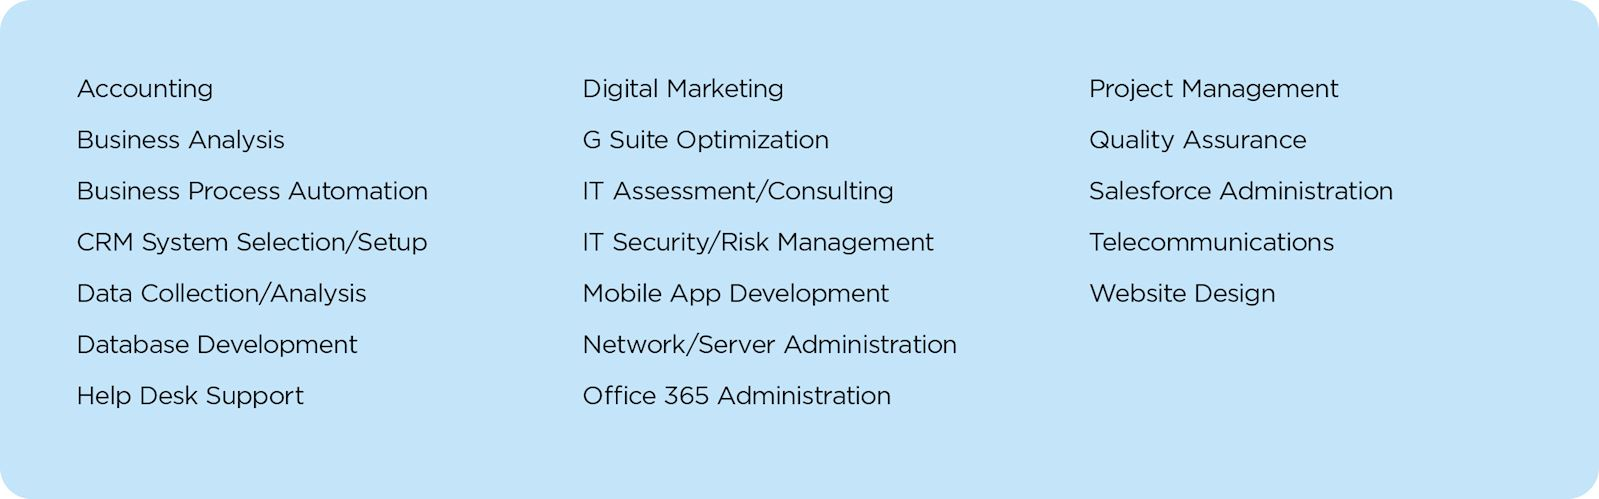 Accounting, business analysis, business process automation, CRM system selection/setup, data collection/analysis, database development, digital marketing, G suite, IT assessment/consulting, IT security/risk mgmt, Mobile app development, network/server administration, project mgmt, quality assurance, salesforce administration, telecommunications, website design